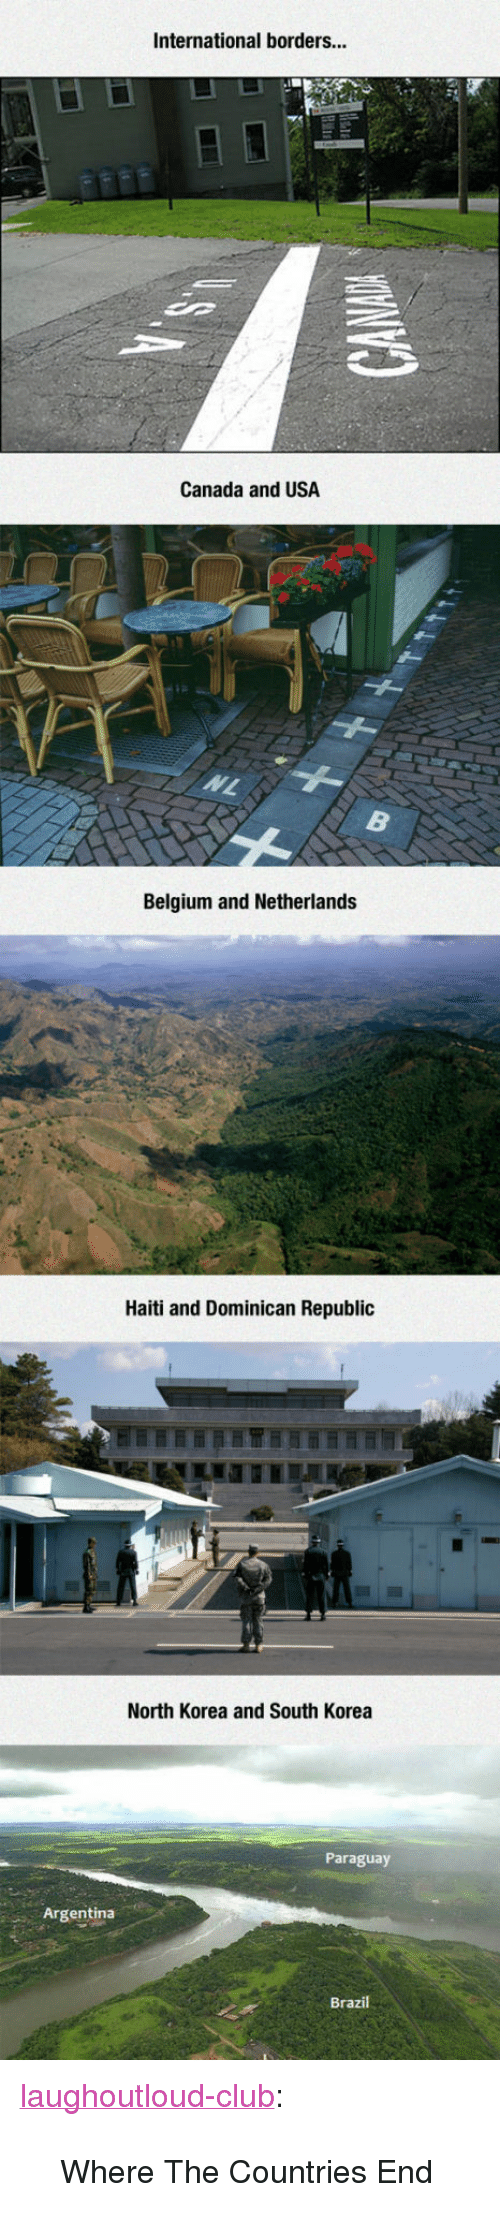 """Belgium, Club, and North Korea: International borders...  Canada and USA  Belgium and Netherlands  Haiti and Dominican Republic  North Korea and South Korea  Paraguay  Argentina  Brazil <p><a href=""""http://laughoutloud-club.tumblr.com/post/171922817890/where-the-countries-end"""" class=""""tumblr_blog"""">laughoutloud-club</a>:</p>  <blockquote><p>Where The Countries End</p></blockquote>"""